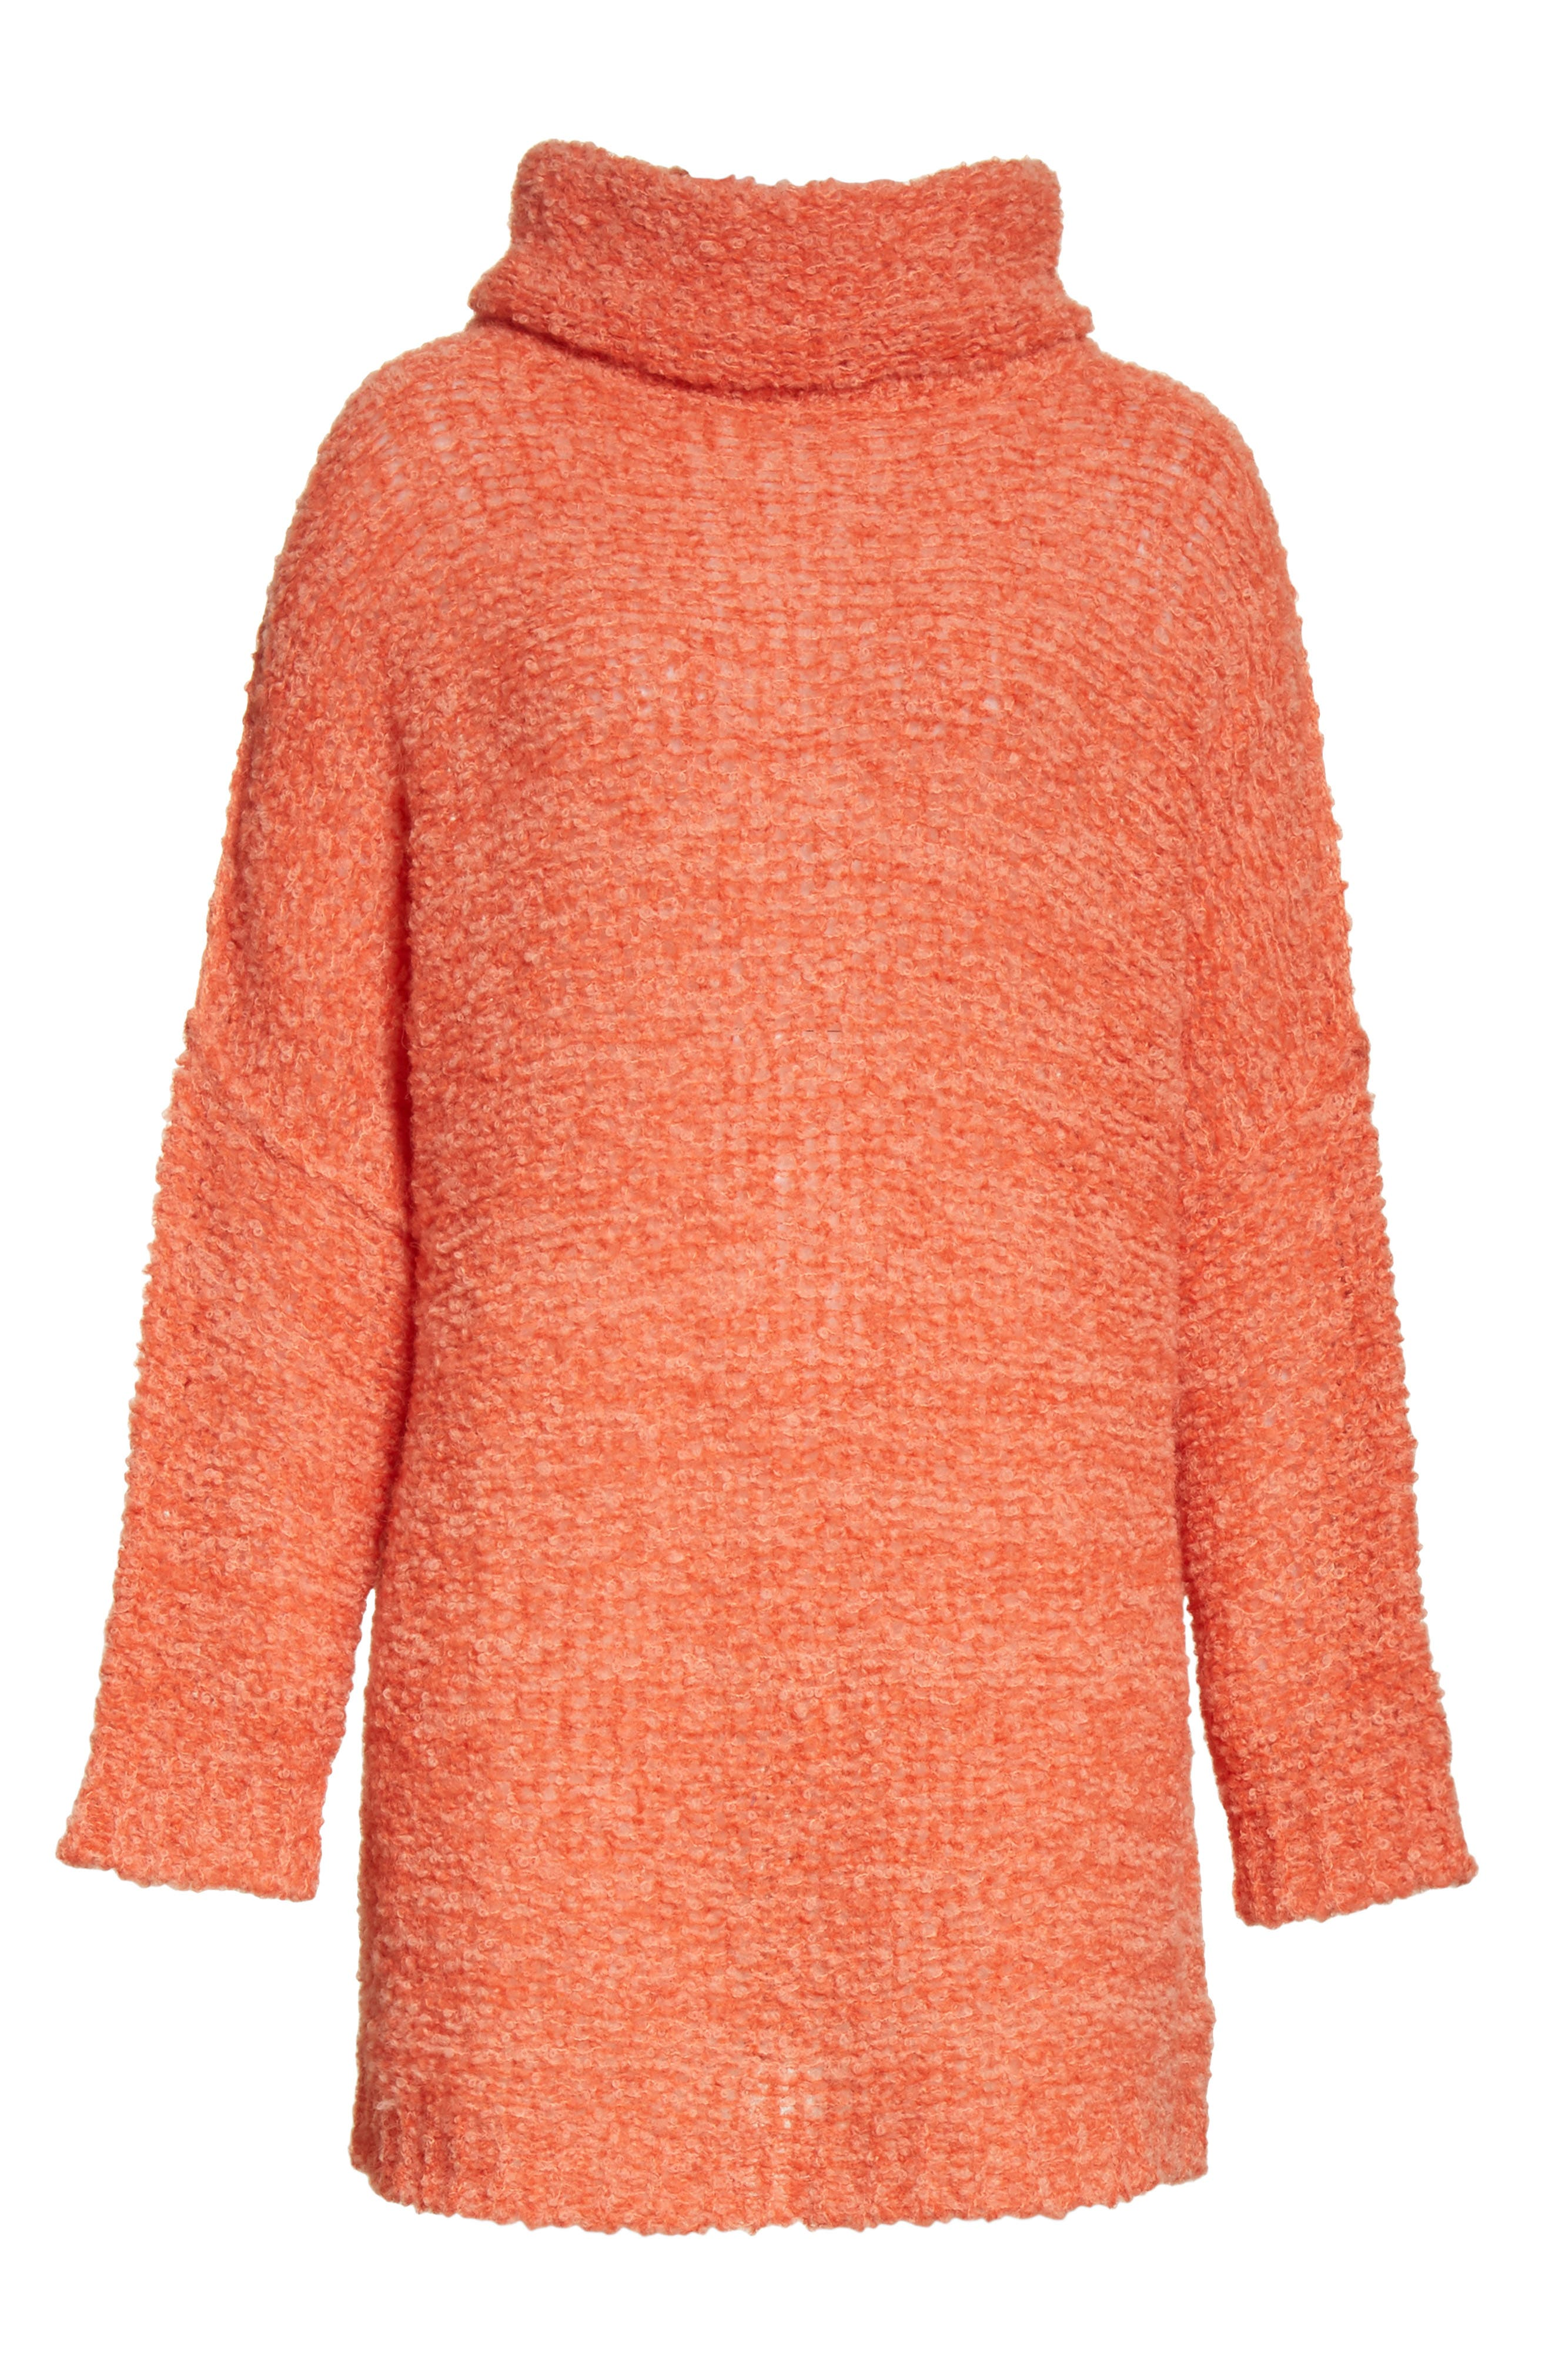 FREE PEOPLE, 'She's All That' Knit Turtleneck Sweater, Alternate thumbnail 6, color, 800